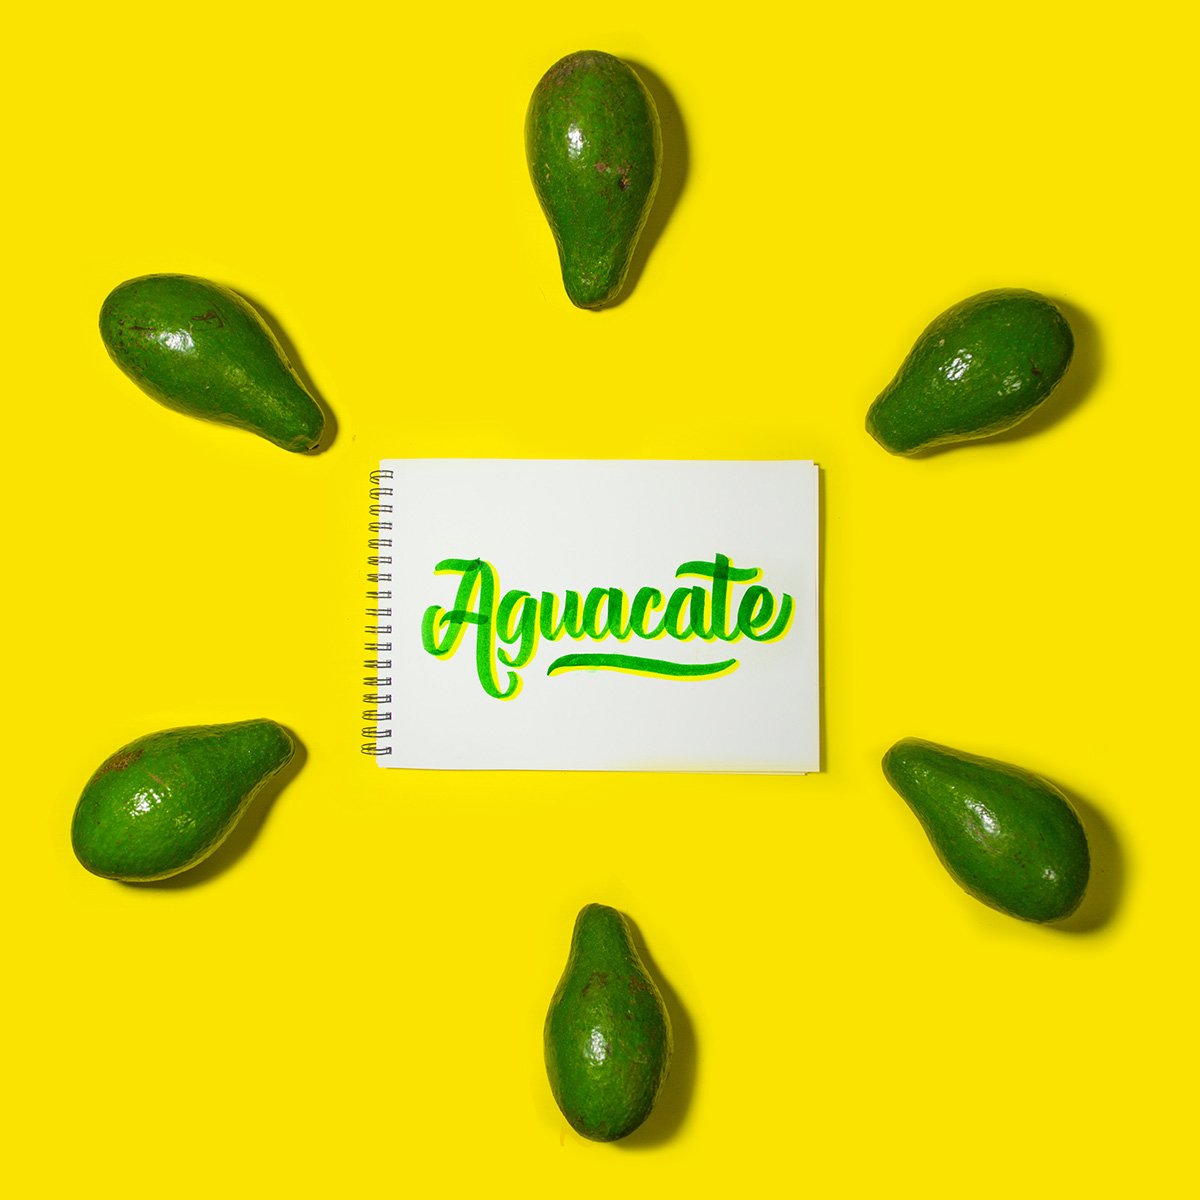 Aguacate lettering